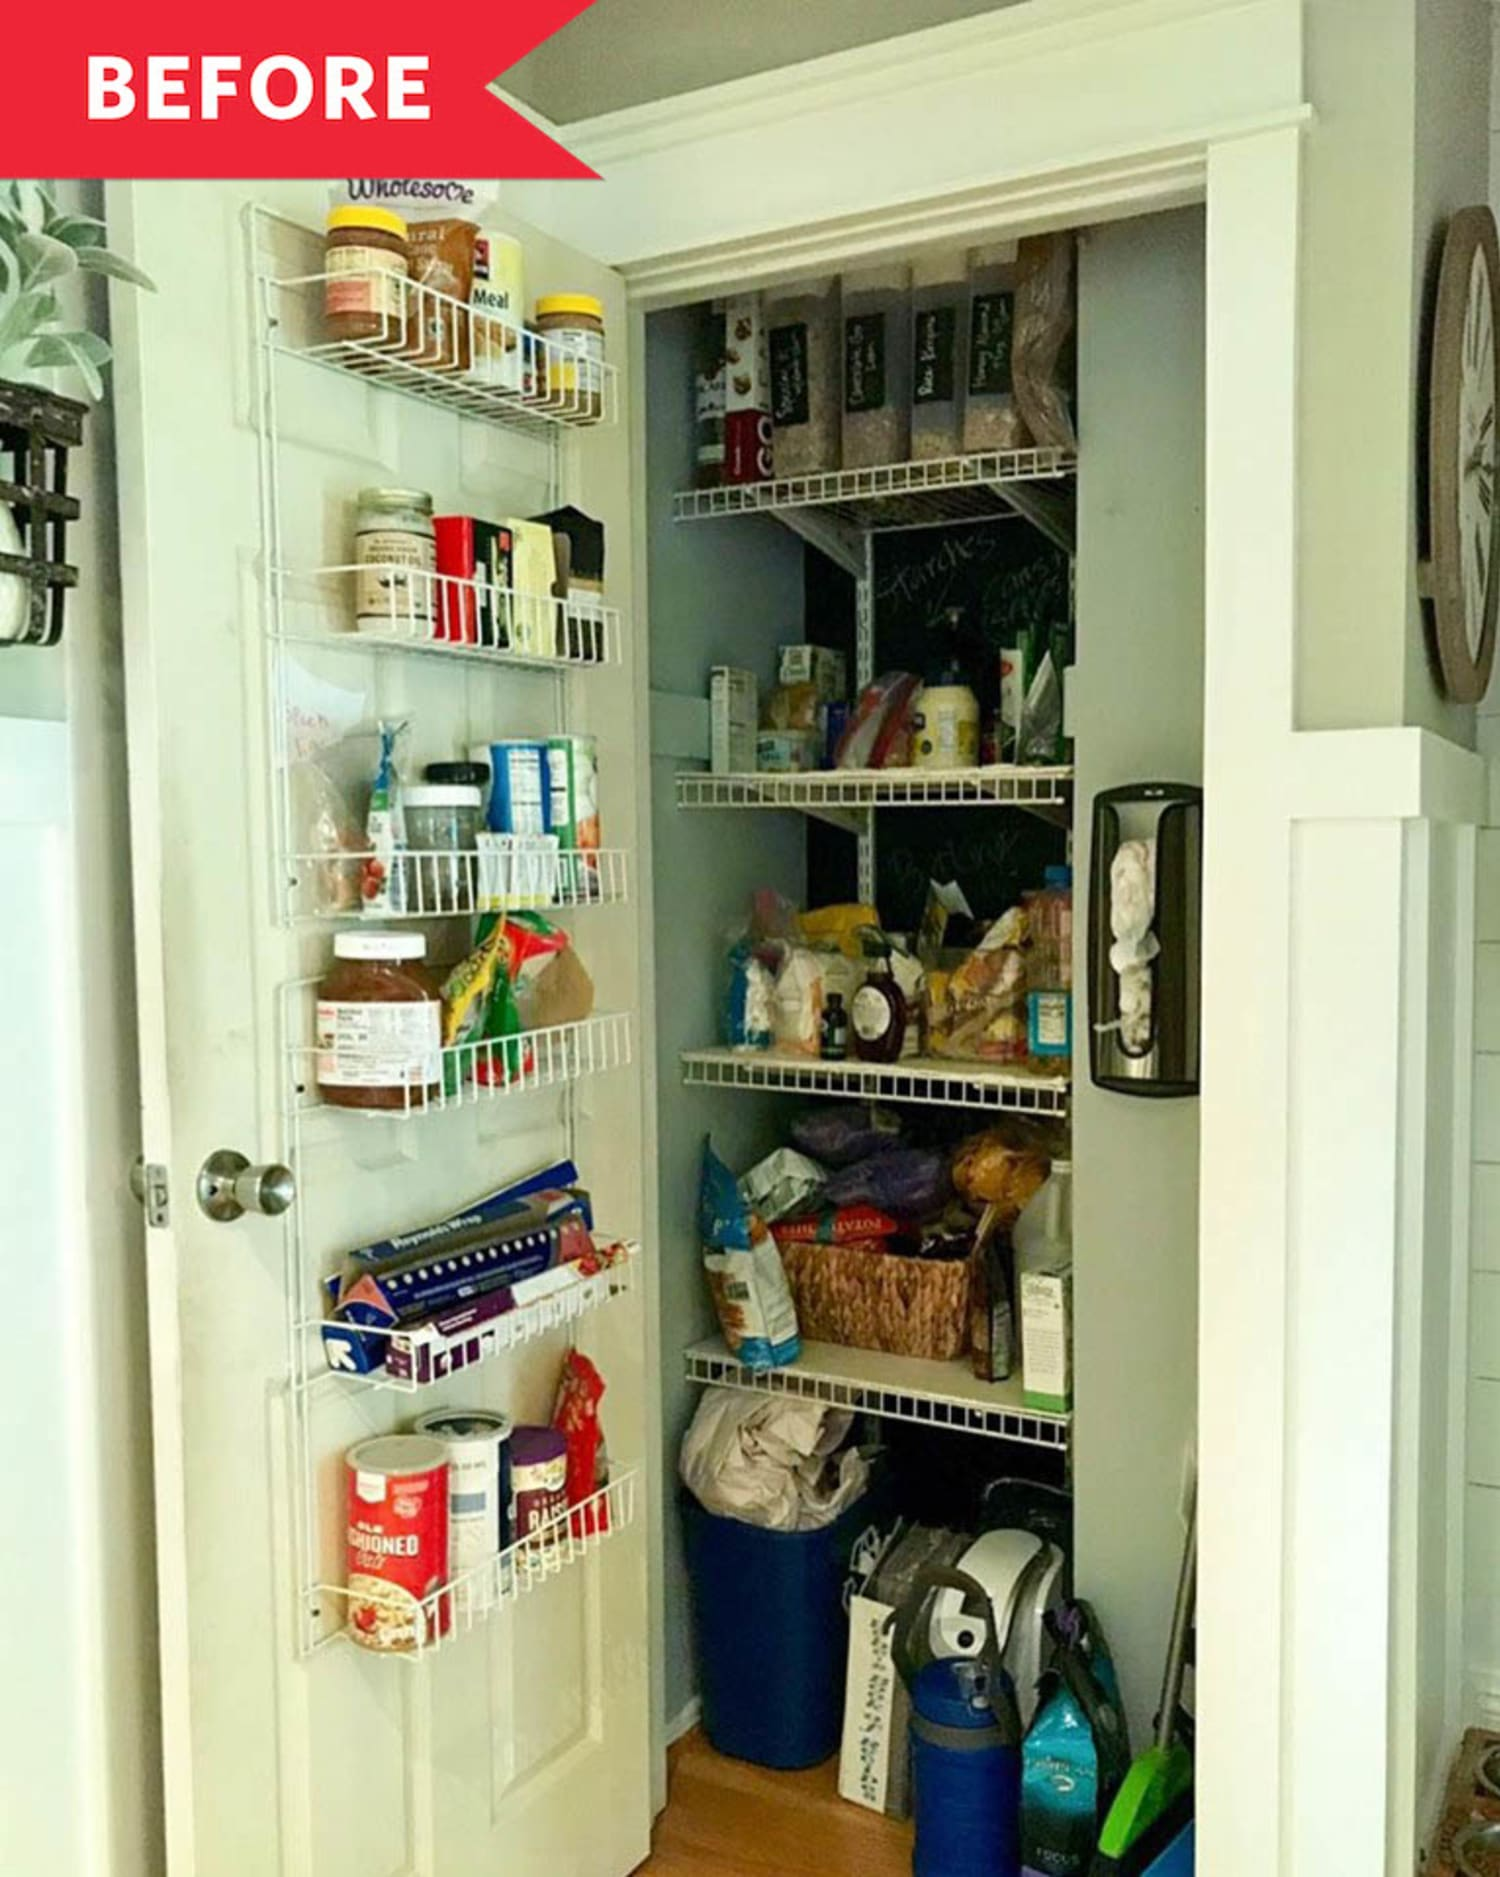 Before and After: How Painting the Door Sparked a Small Pantry's Organizational Overhaul